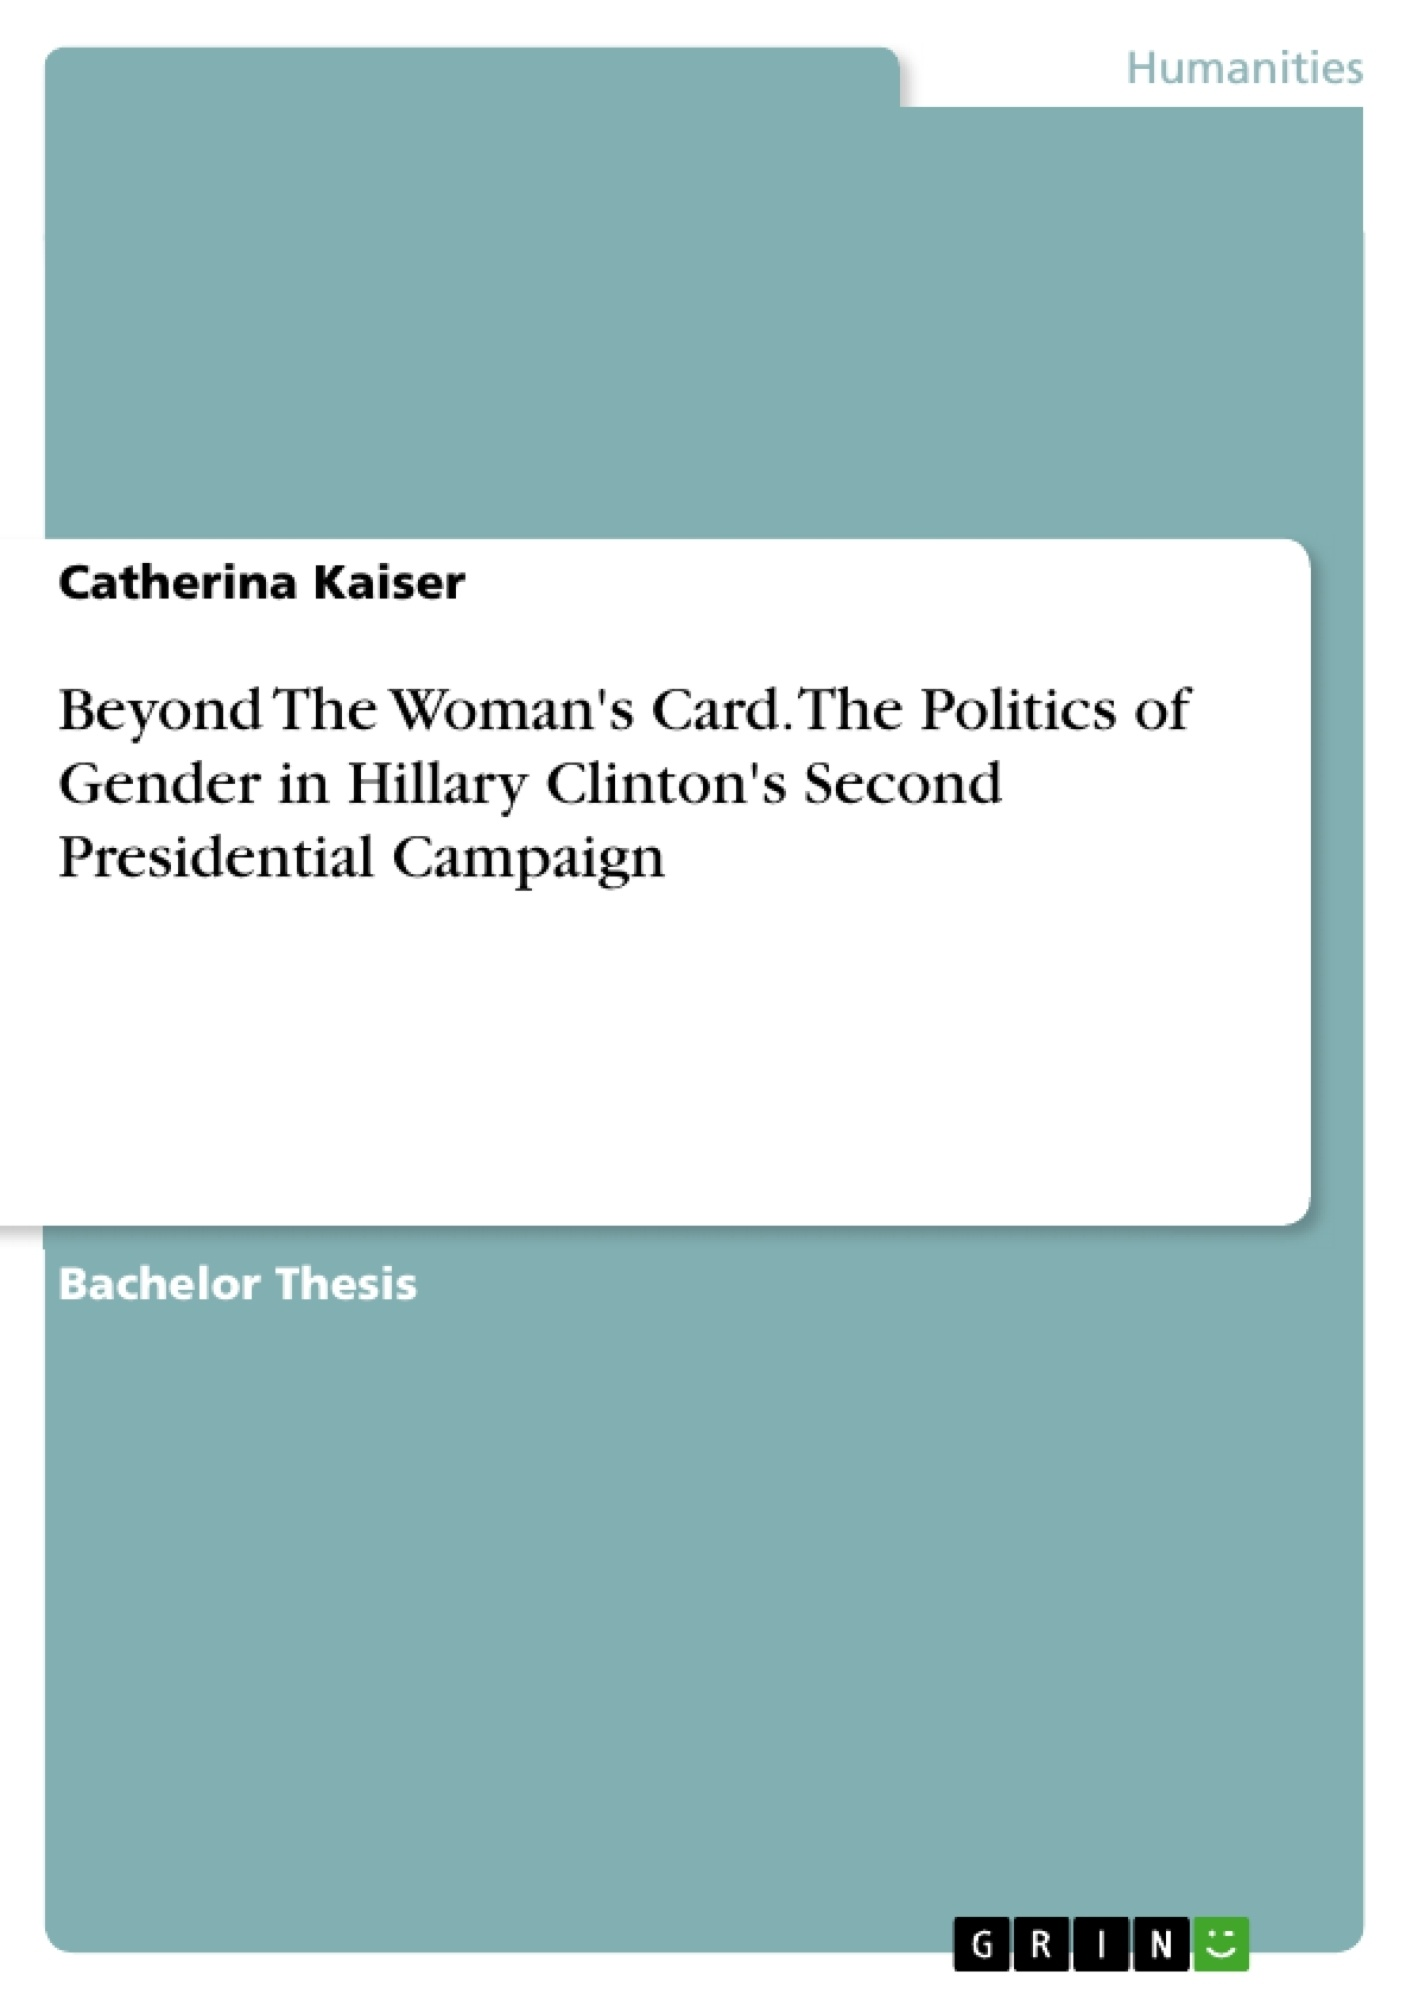 Title: Beyond The Woman's Card. The Politics of Gender in Hillary Clinton's Second Presidential Campaign